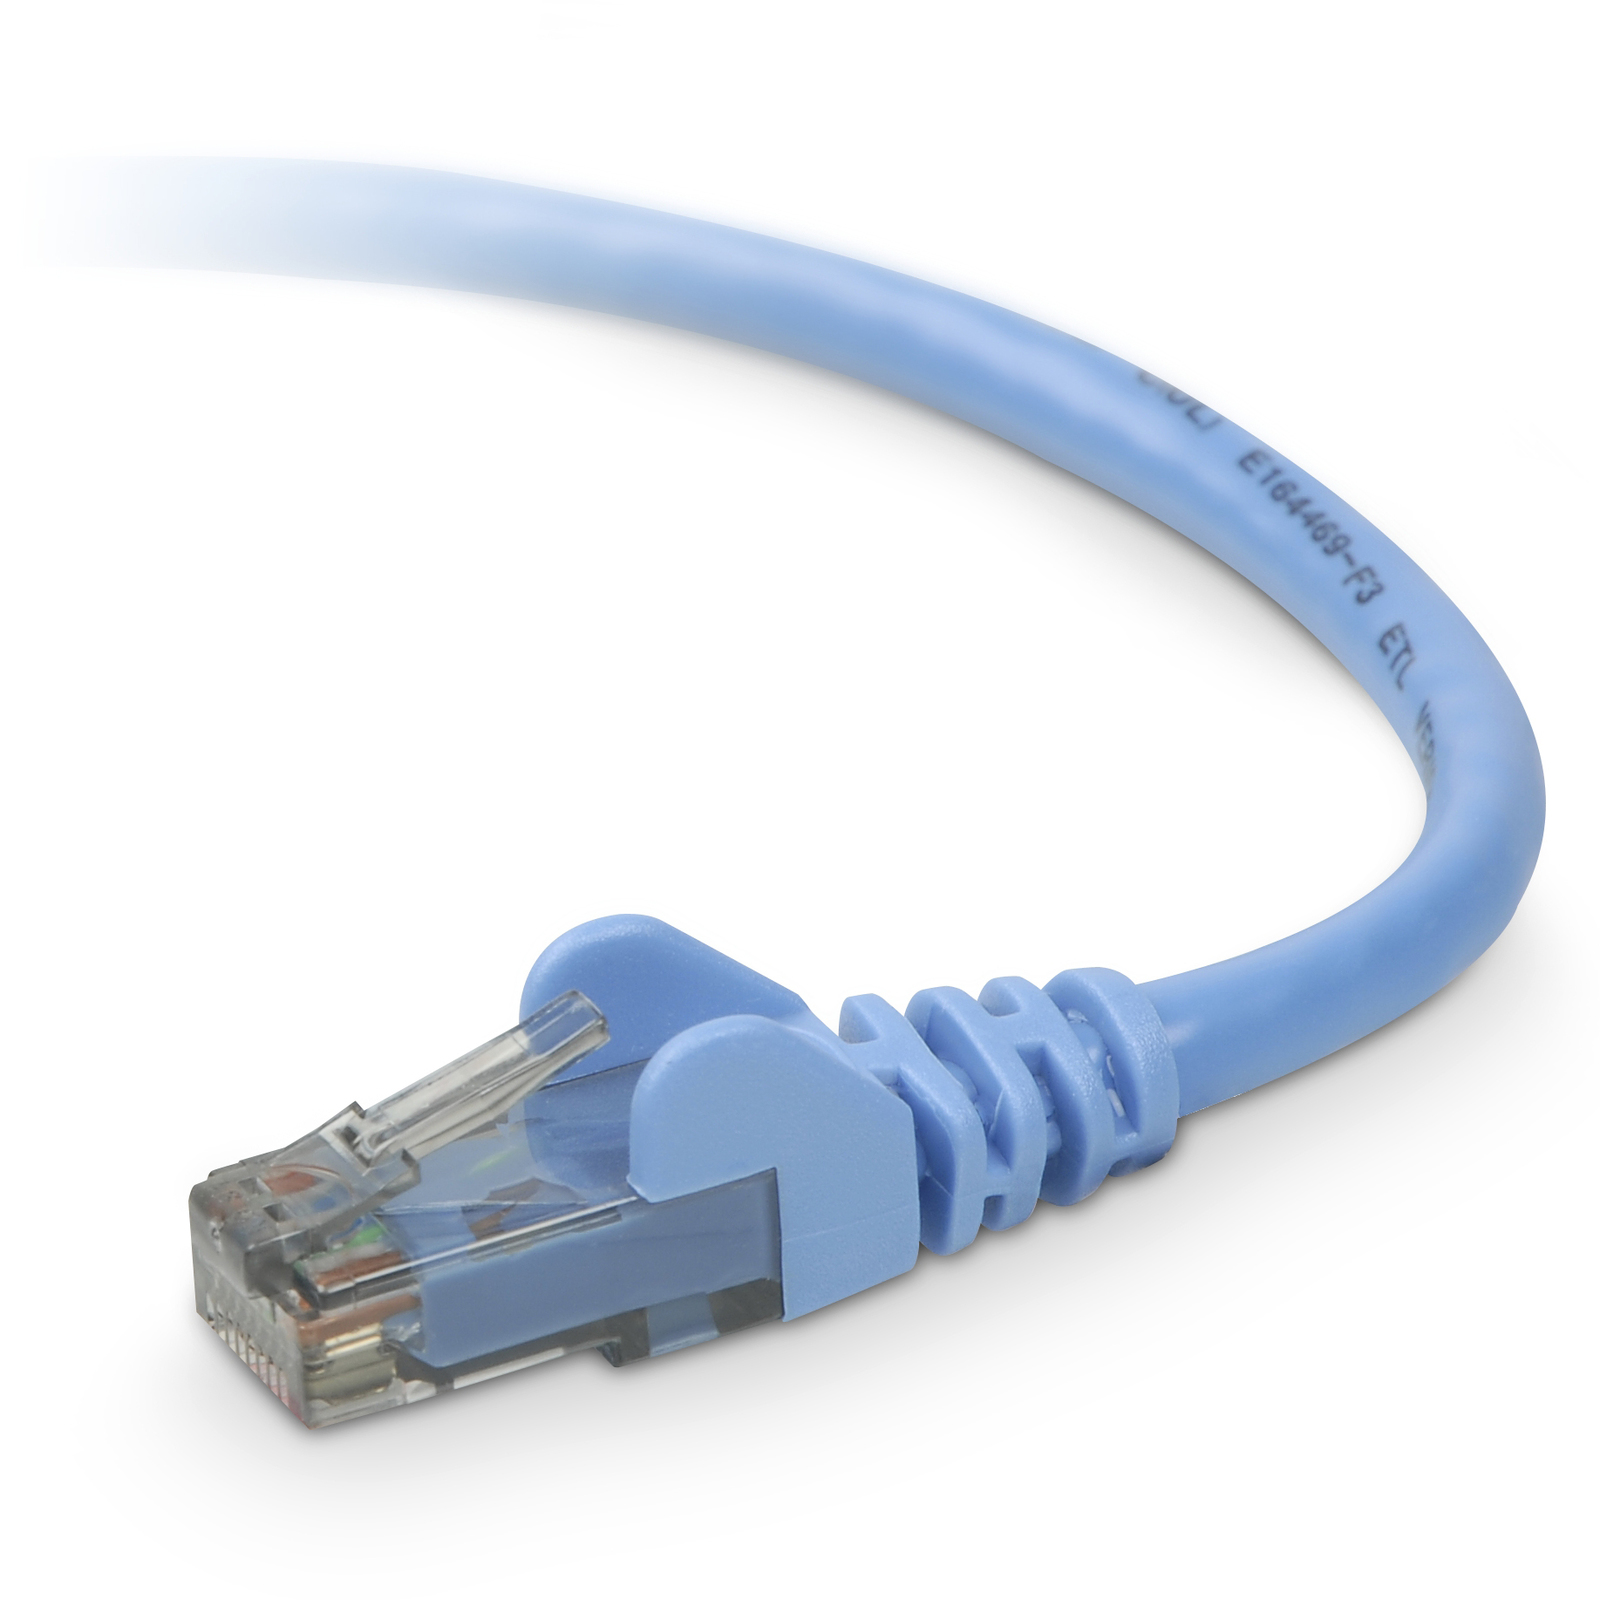 Belkin - Cat6 Patch Cable Snagless - 3m (Blue) image